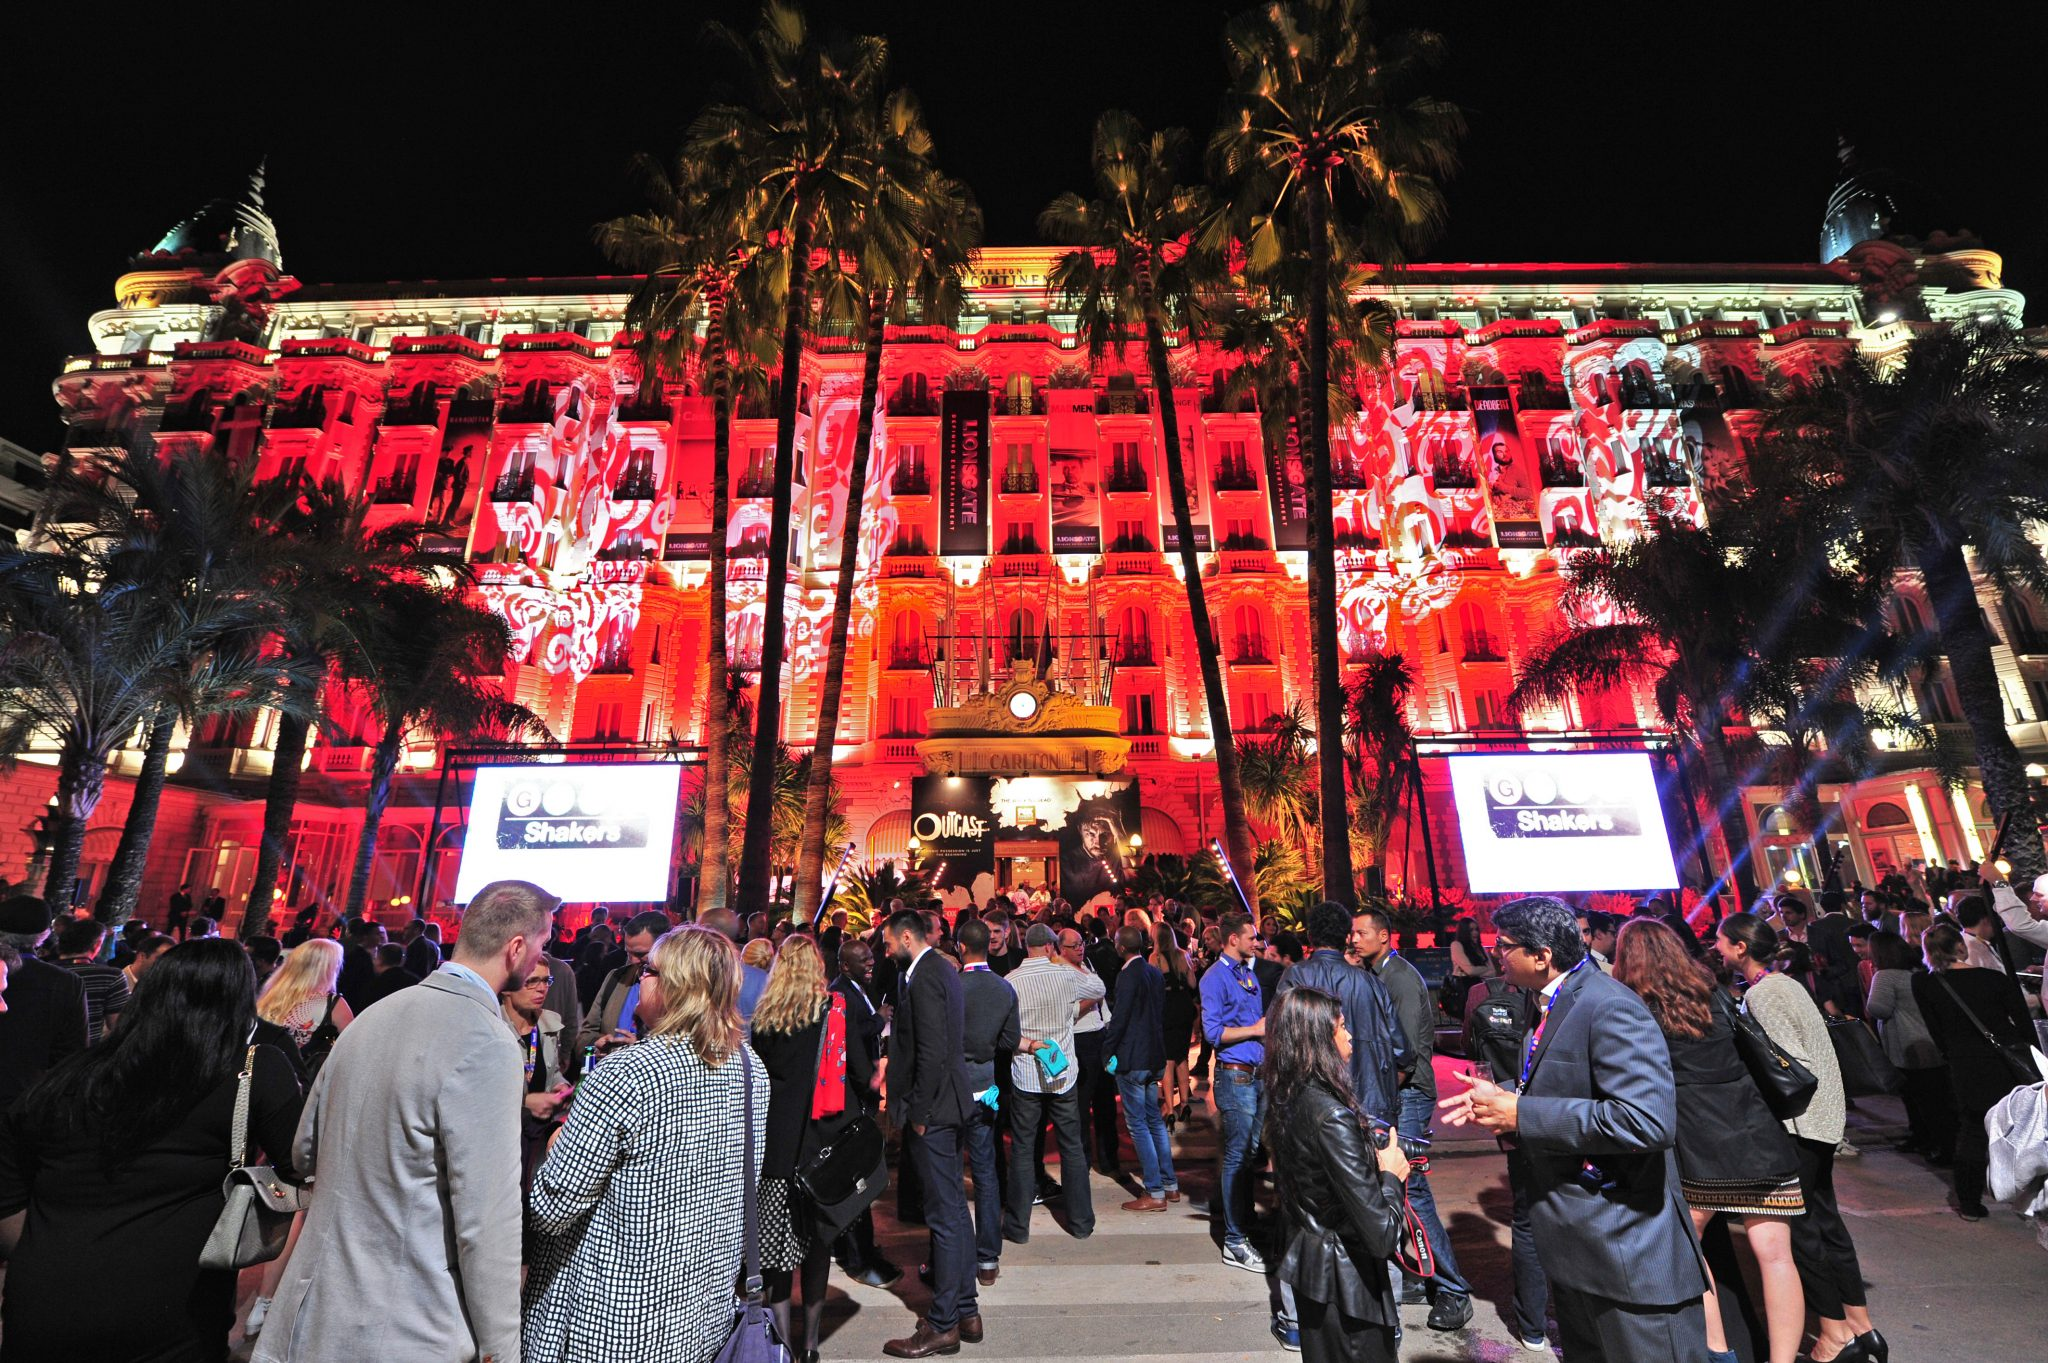 MIPCOM 2015 - EVENT - MIPCOM OPENING PARTY - CARLTON HOTEL